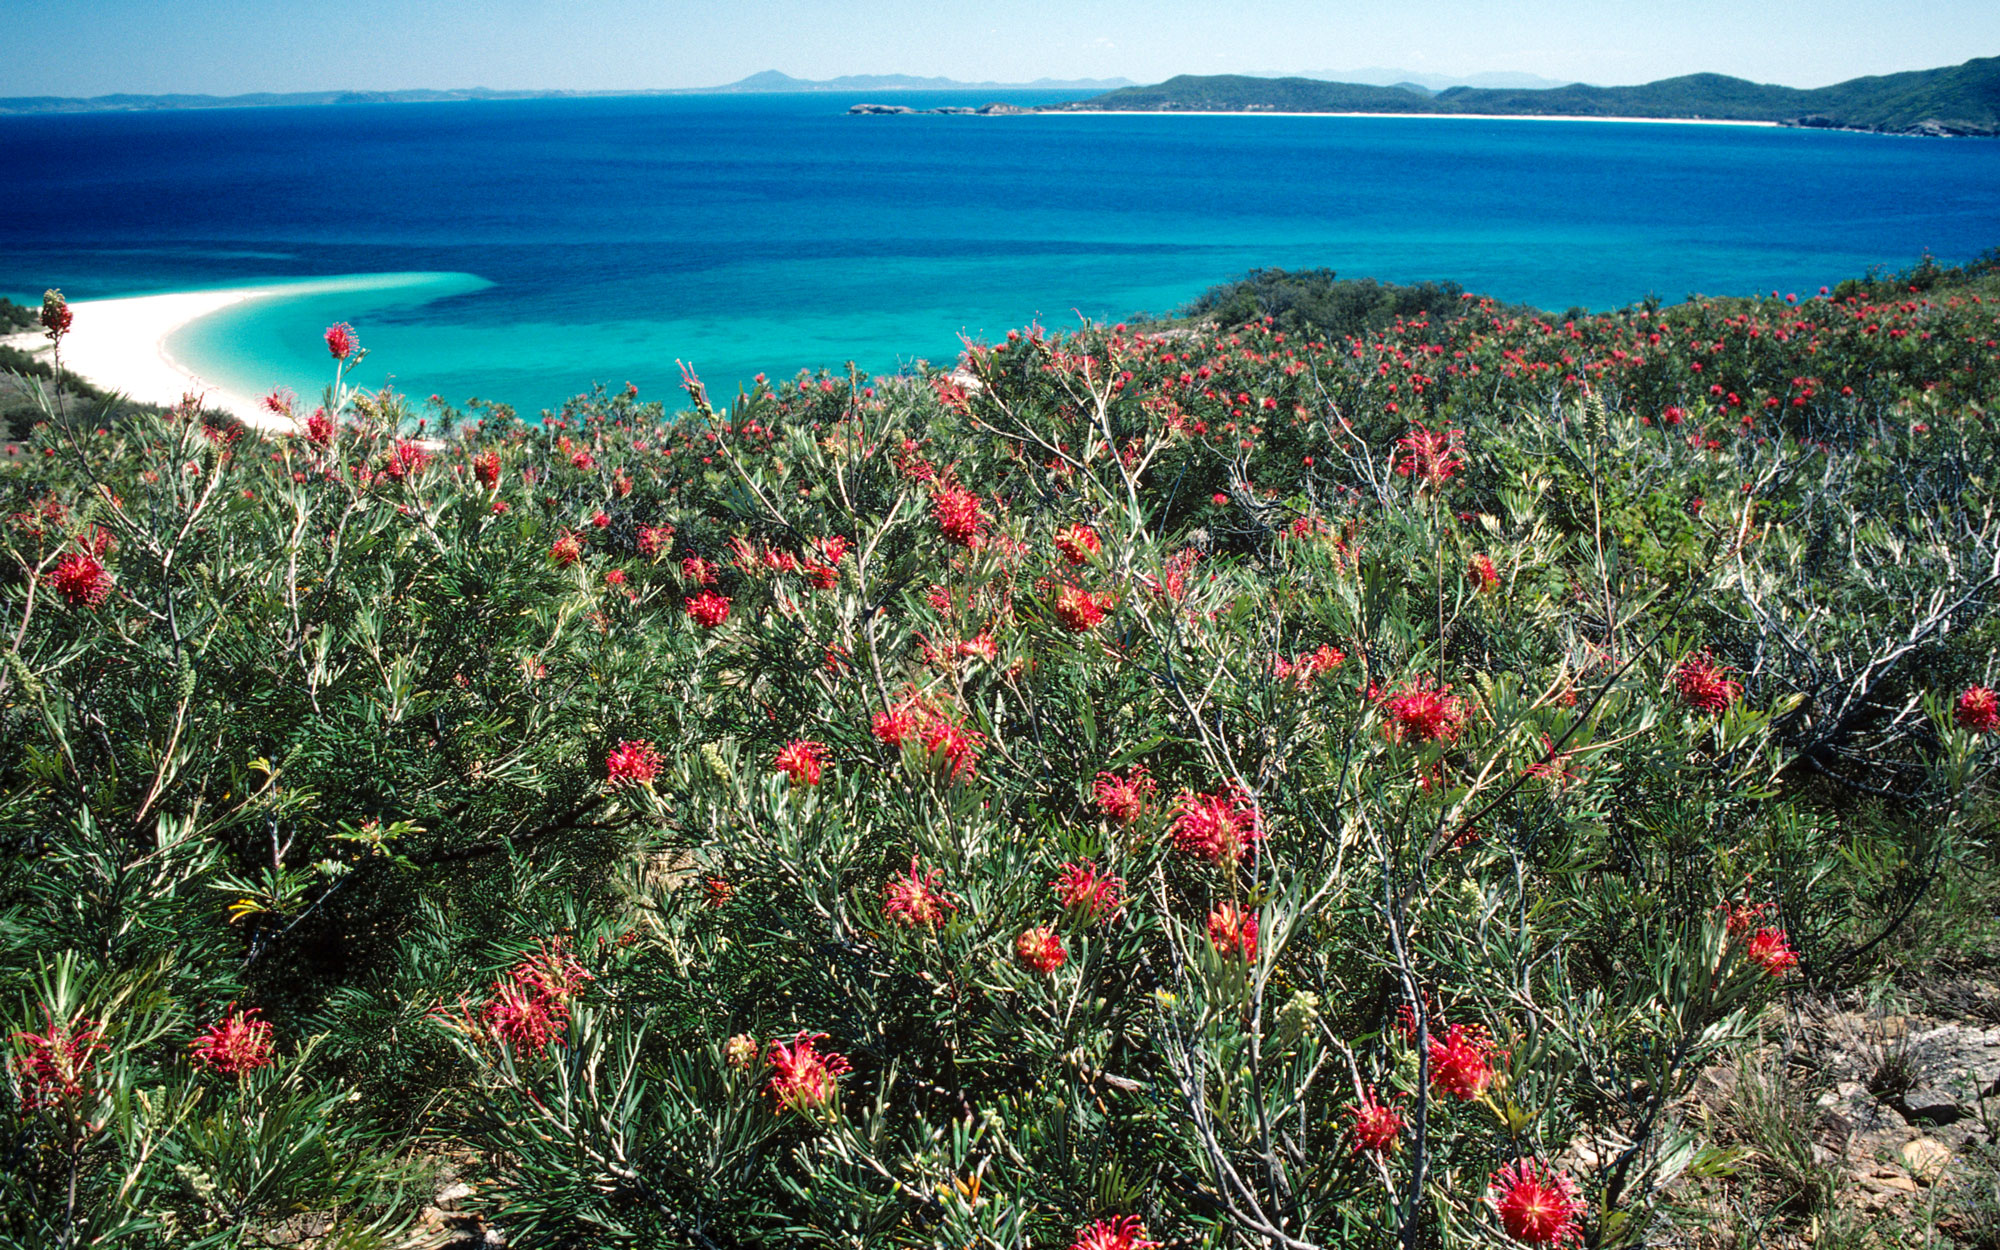 The World's Best Island Beaches:  No. 13 Great Barrier Reef Islands